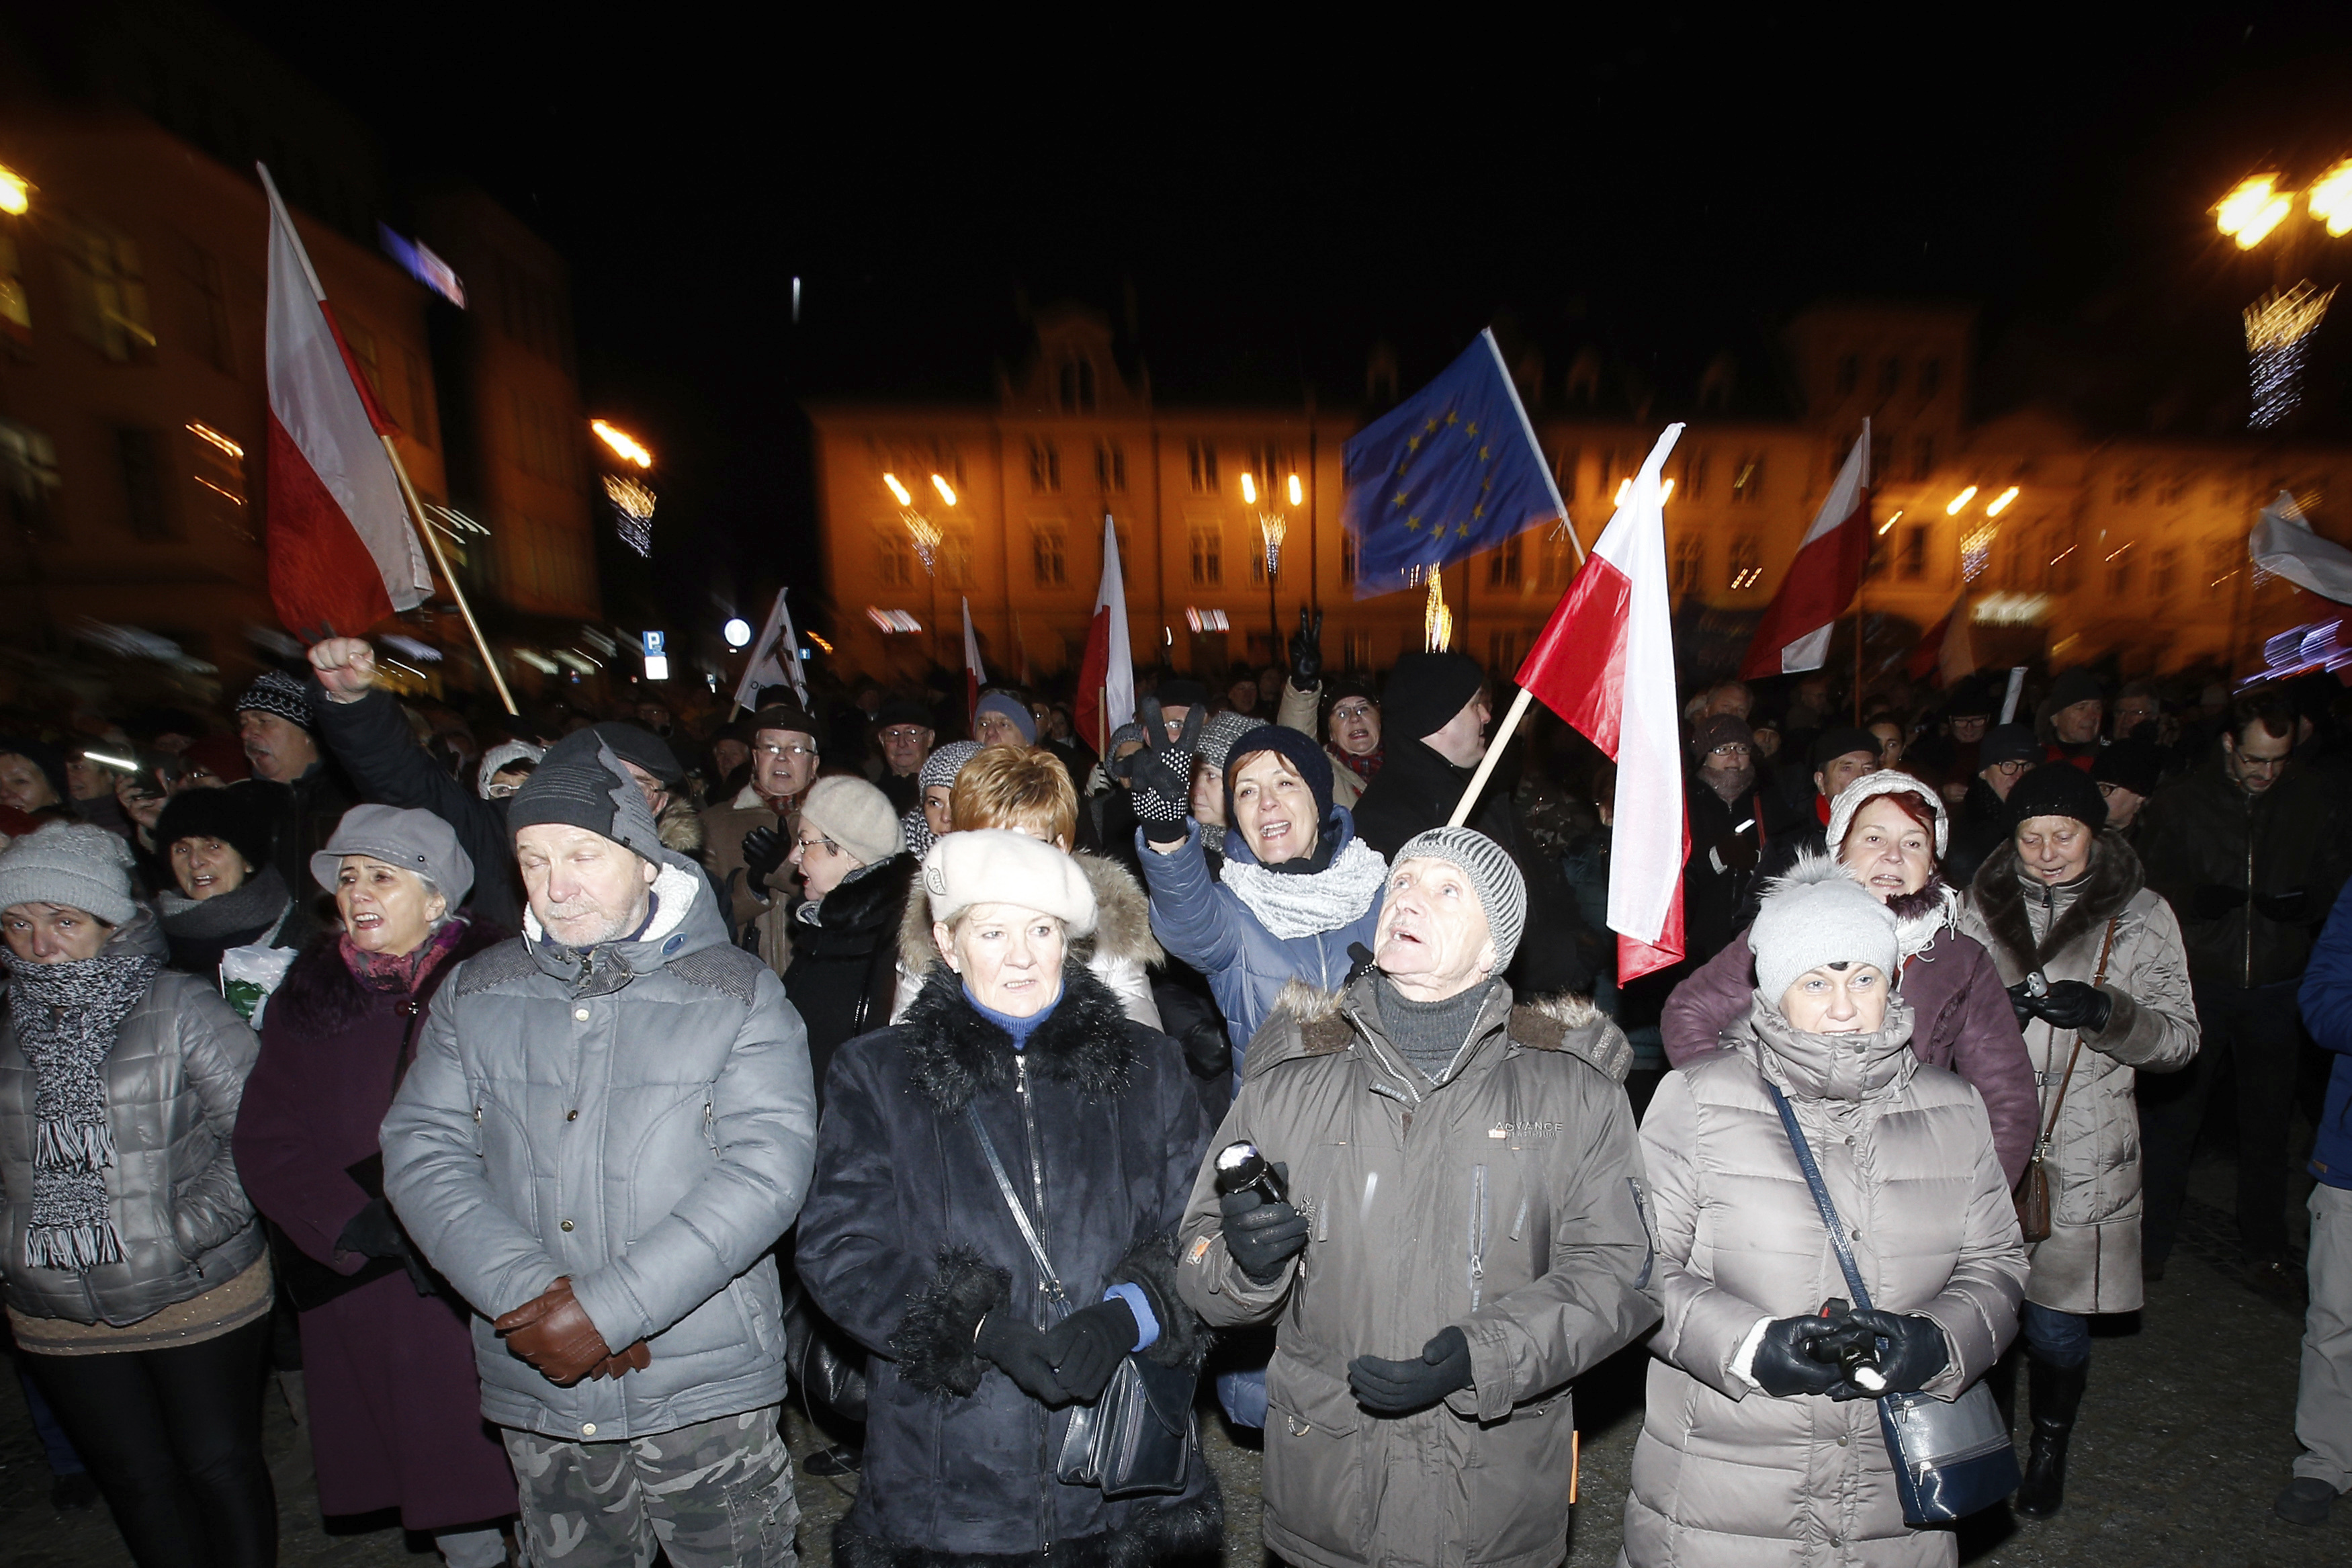 Poland: KOD moviment protest against polish government